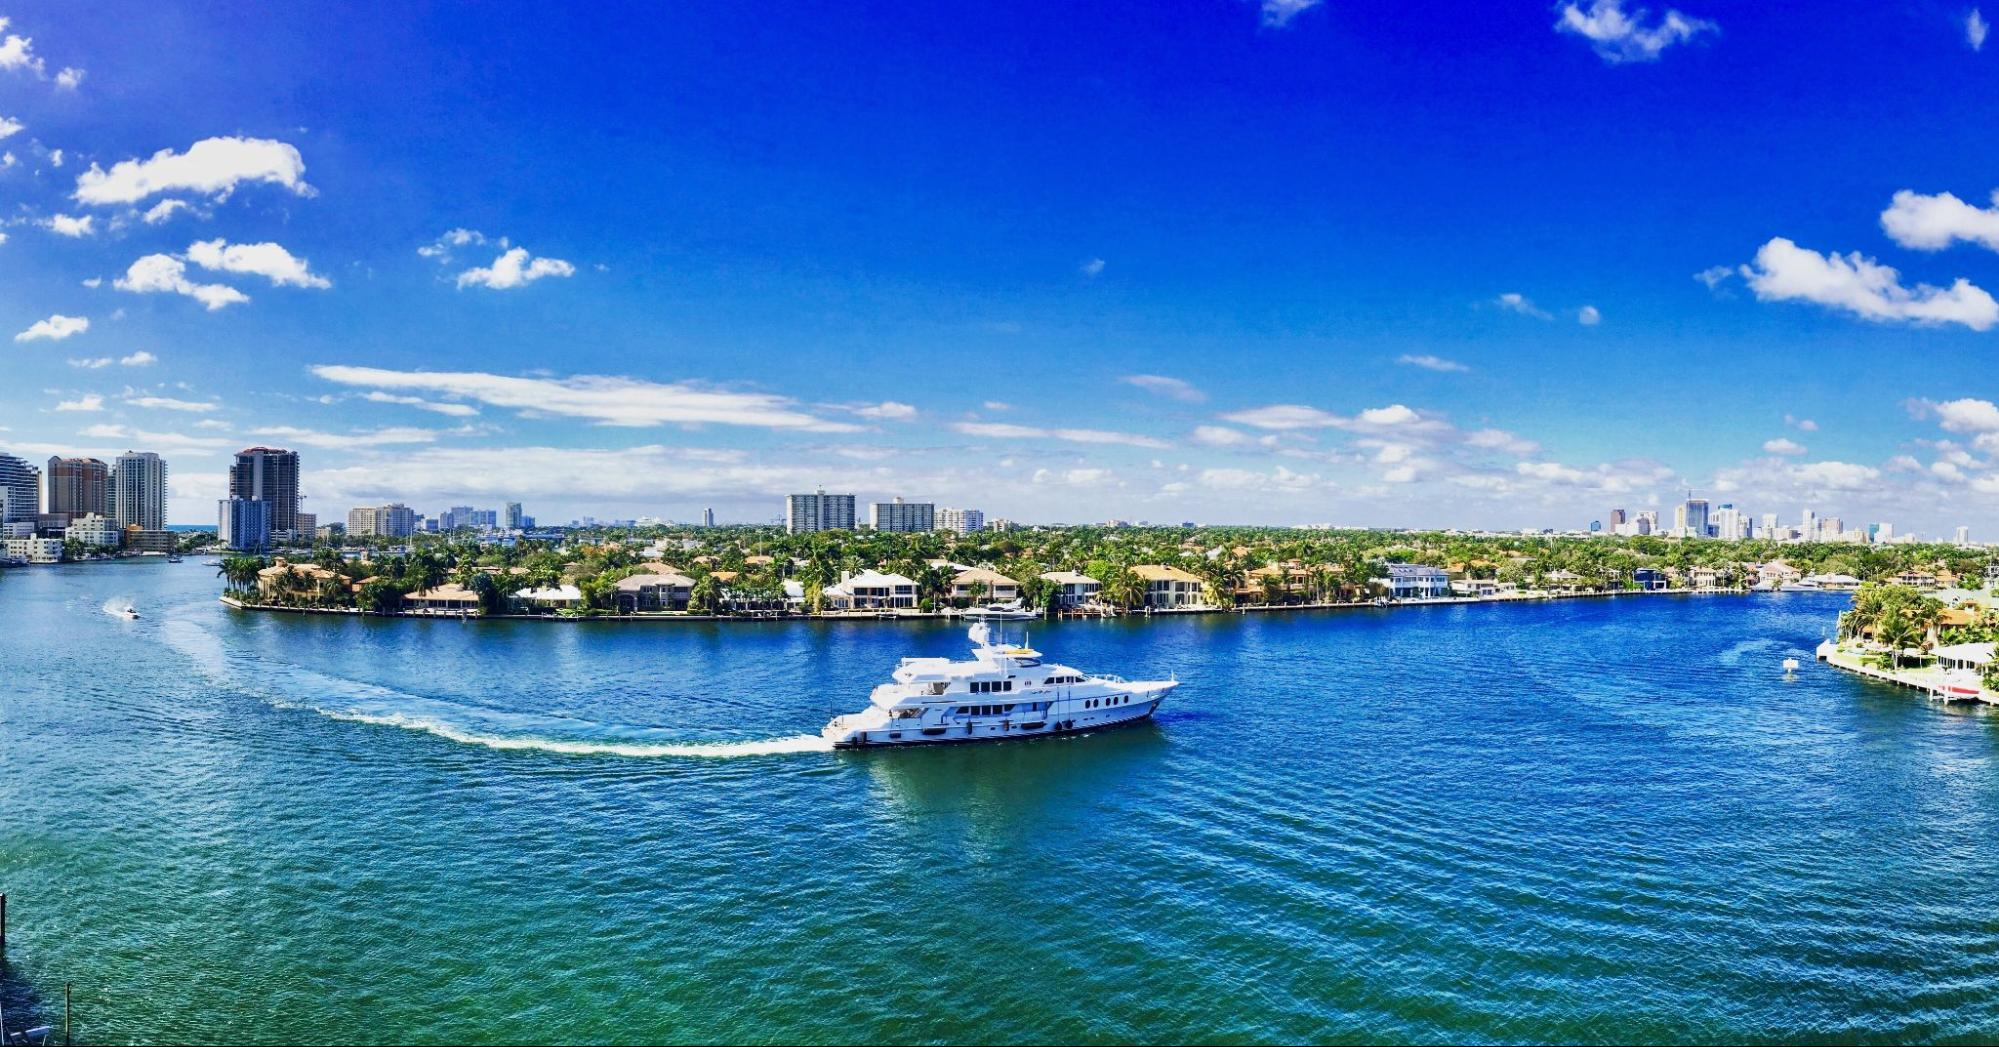 View of the water in Fort Lauderdale, Florida